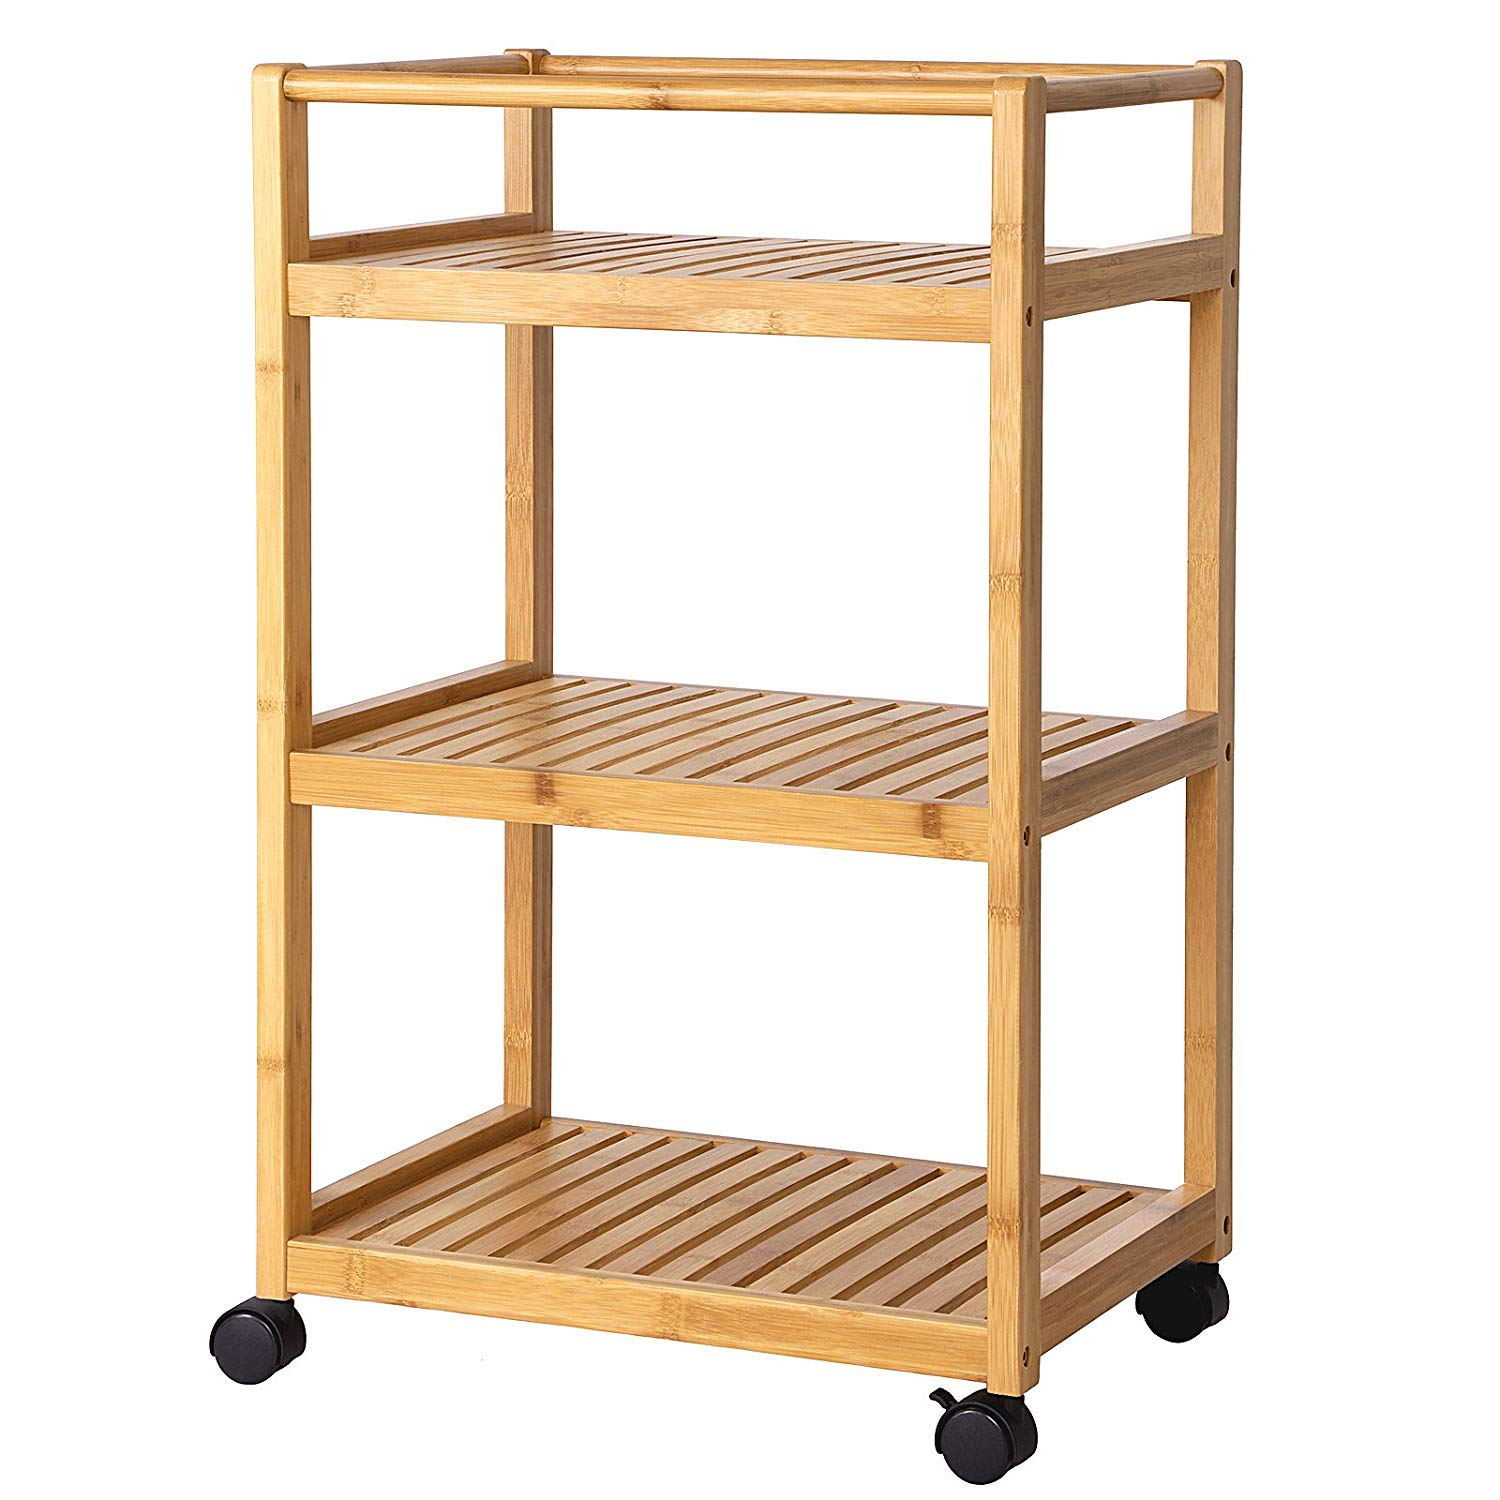 Trustiwood Bathroom Storage Cart Serving Bar Cart Utility Trolley Organizer Rack with 3 Shelves and Locking Wheels for Kitchen Living Room Bamboo Wood